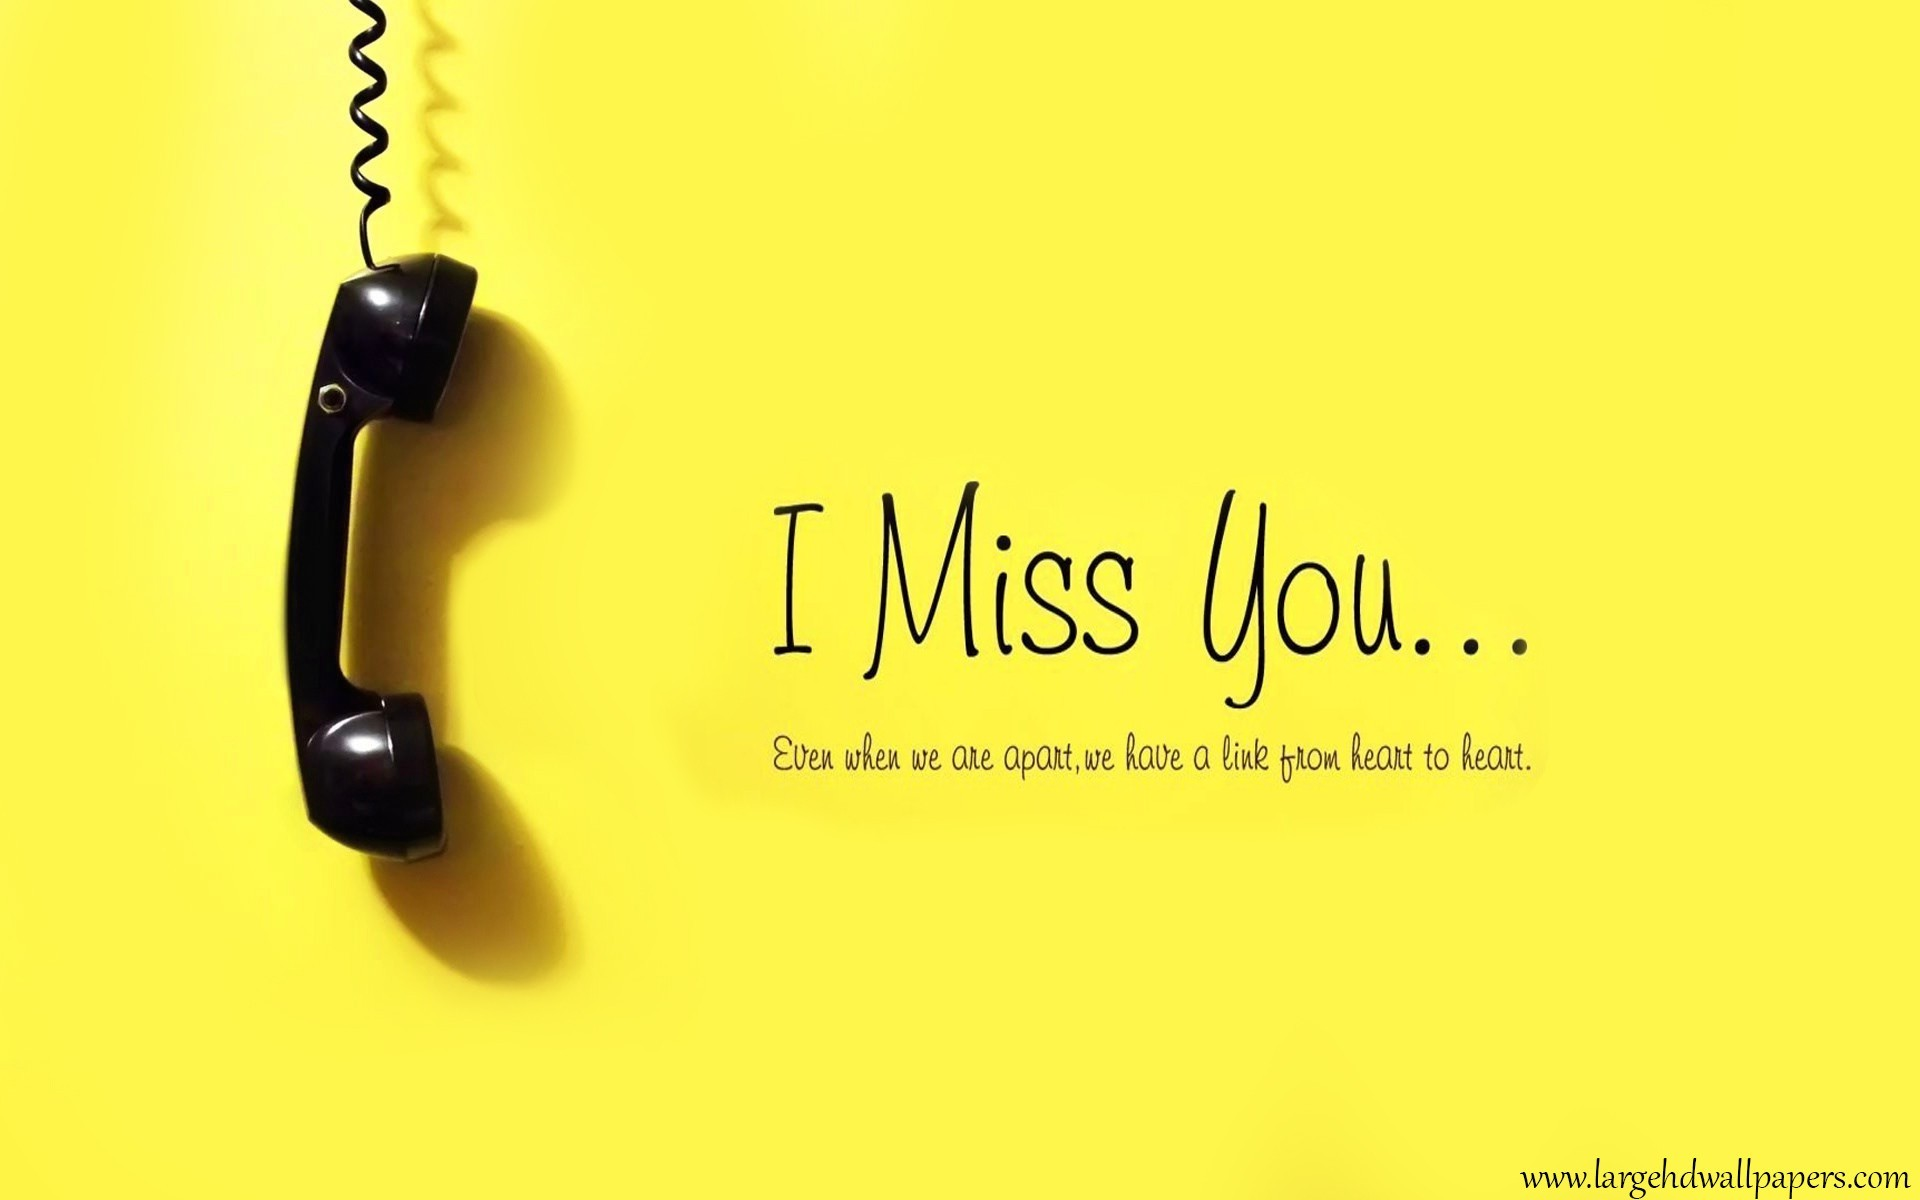 1920x1200 I Miss You Yellow Desktop Background Wallpapers